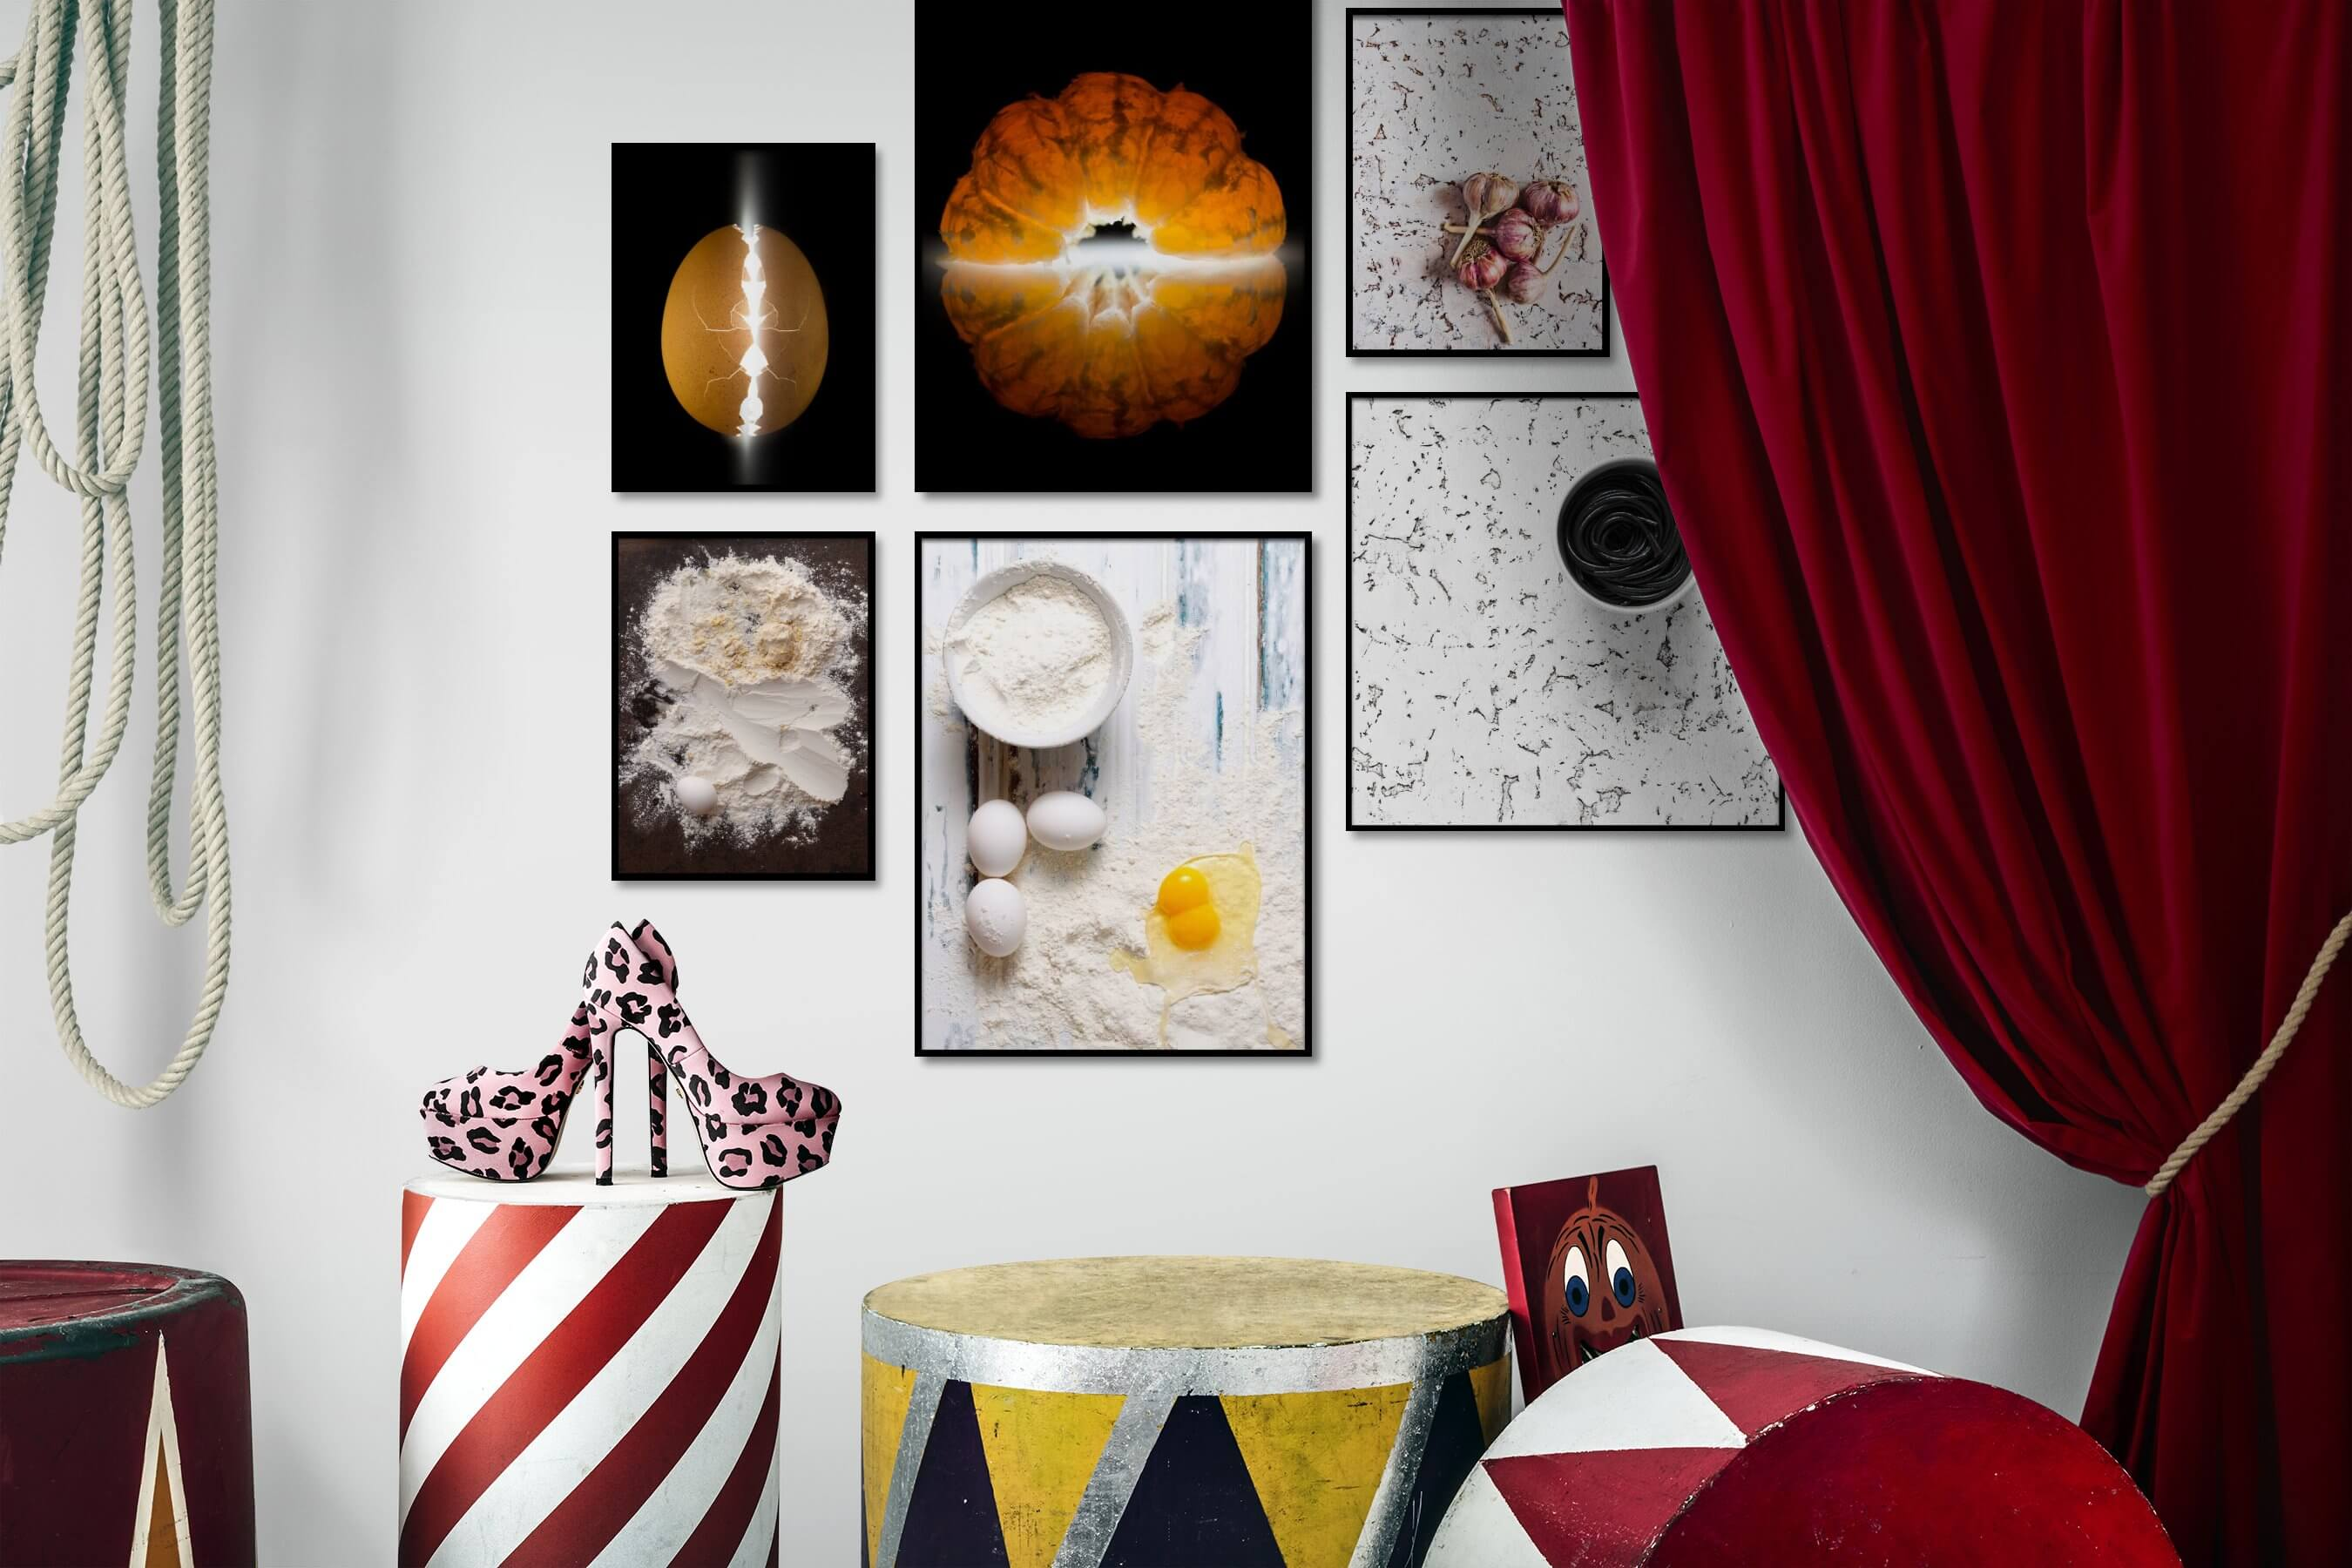 Gallery wall idea with six framed pictures arranged on a wall depicting Dark Tones, For the Minimalist, and For the Moderate